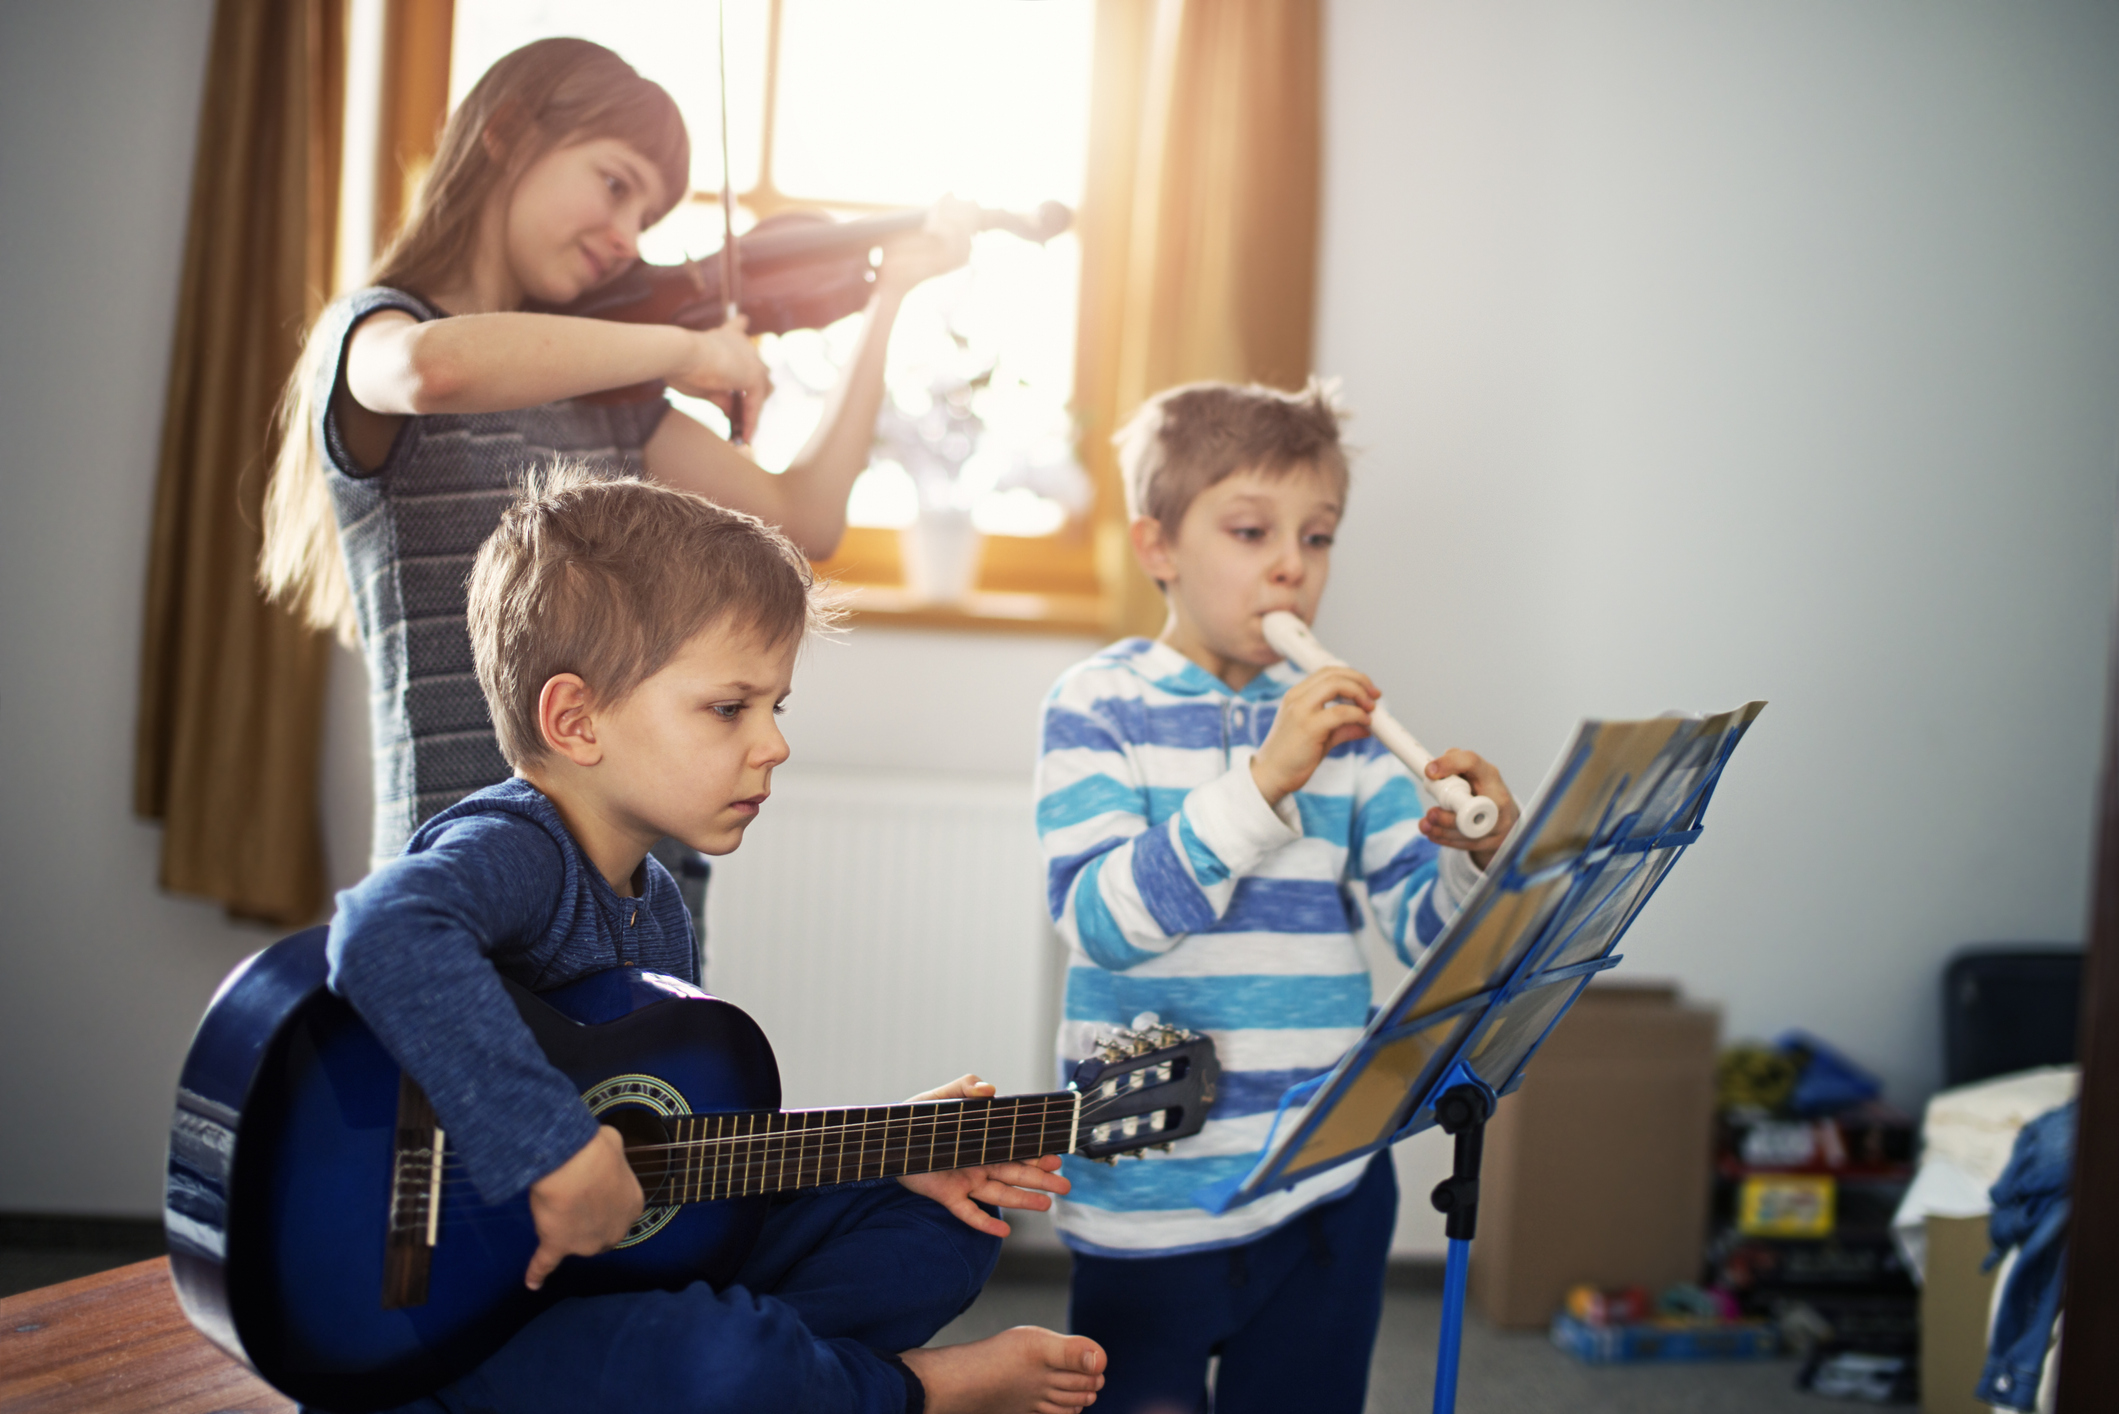 au pair kids nanny playing instruments new year bucket list